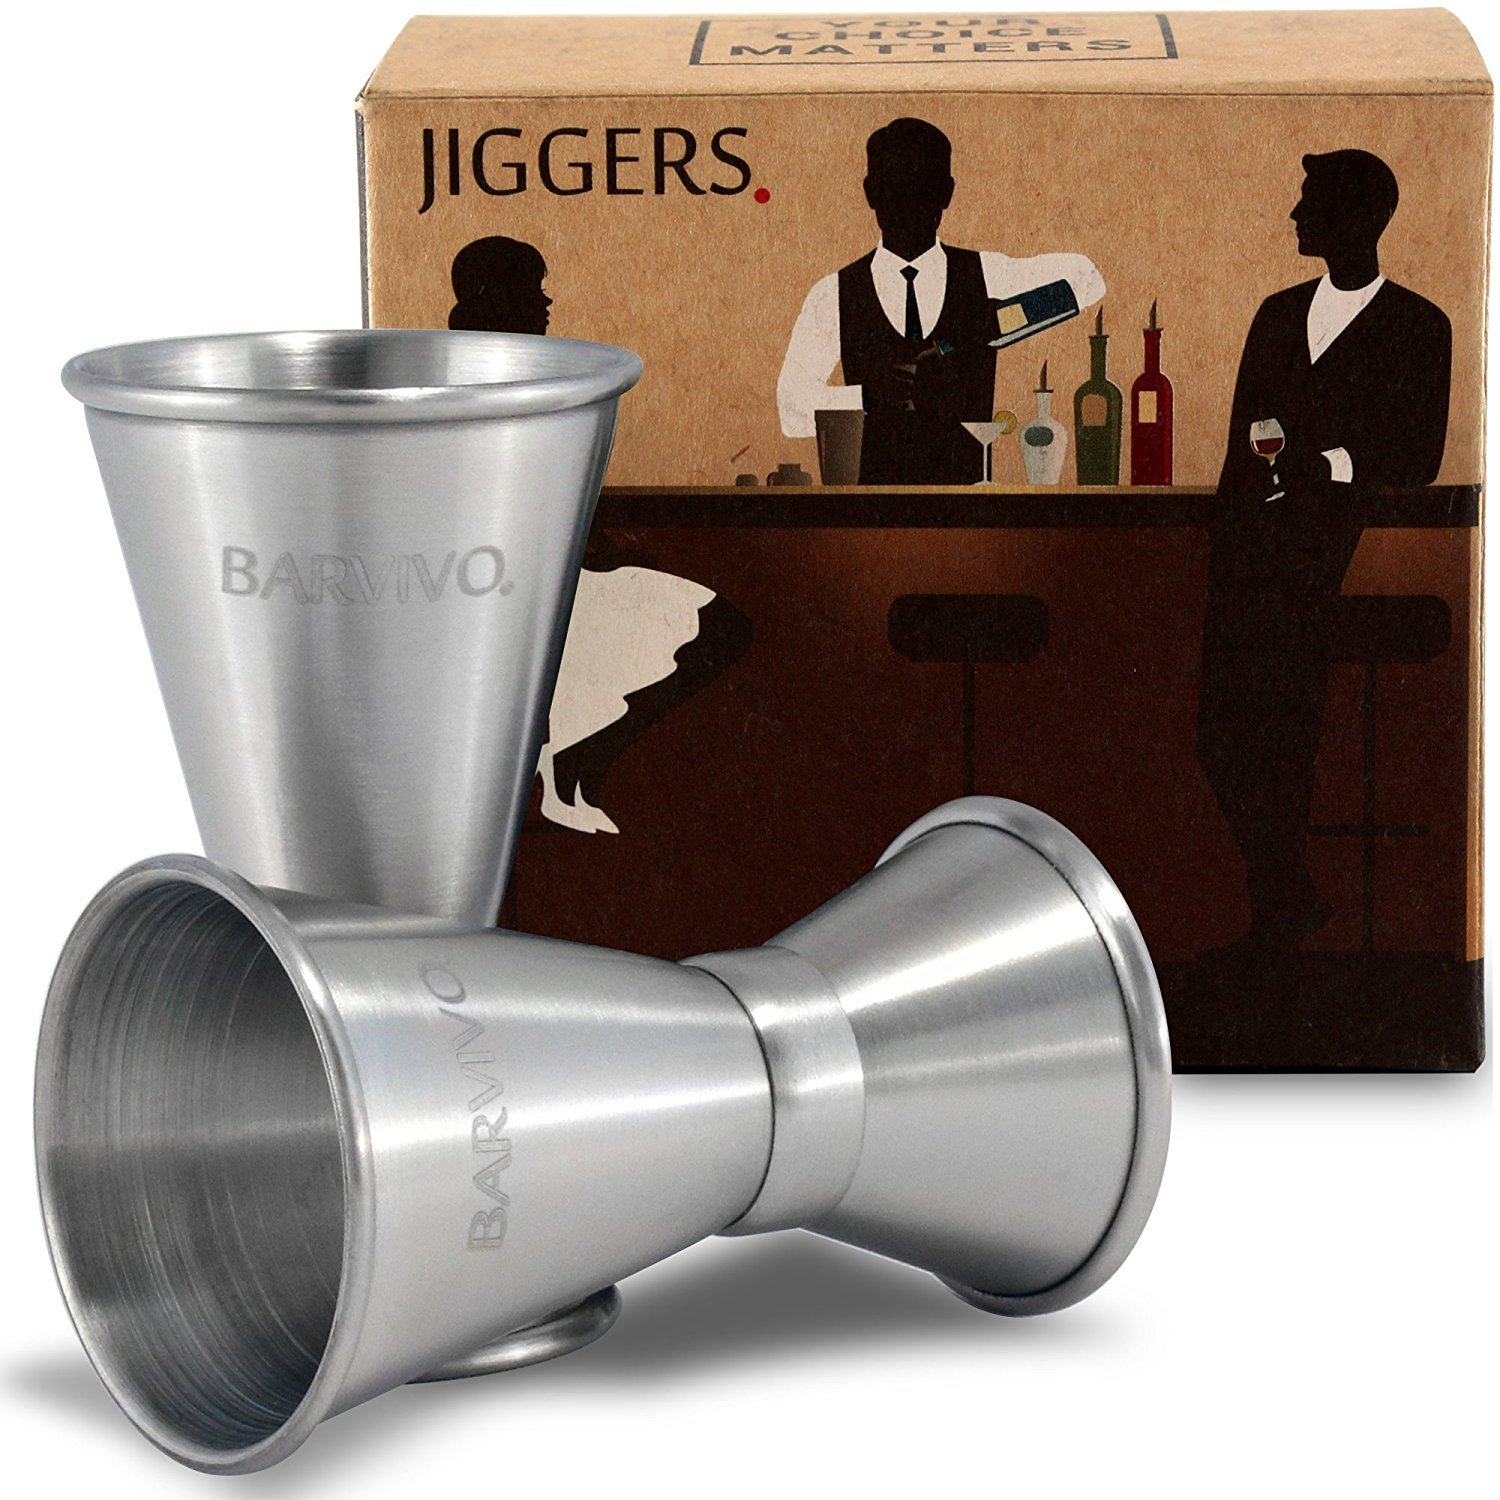 Double Jigger Set by Barvivo - Measure Liquor with Confidence Like a Professional Bartender - These Stainless Steel Cocktail Jiggers Holds 0.5oz/1oz - The Perfect Addition to Your Home Bar Tools. COMINHKPR140264